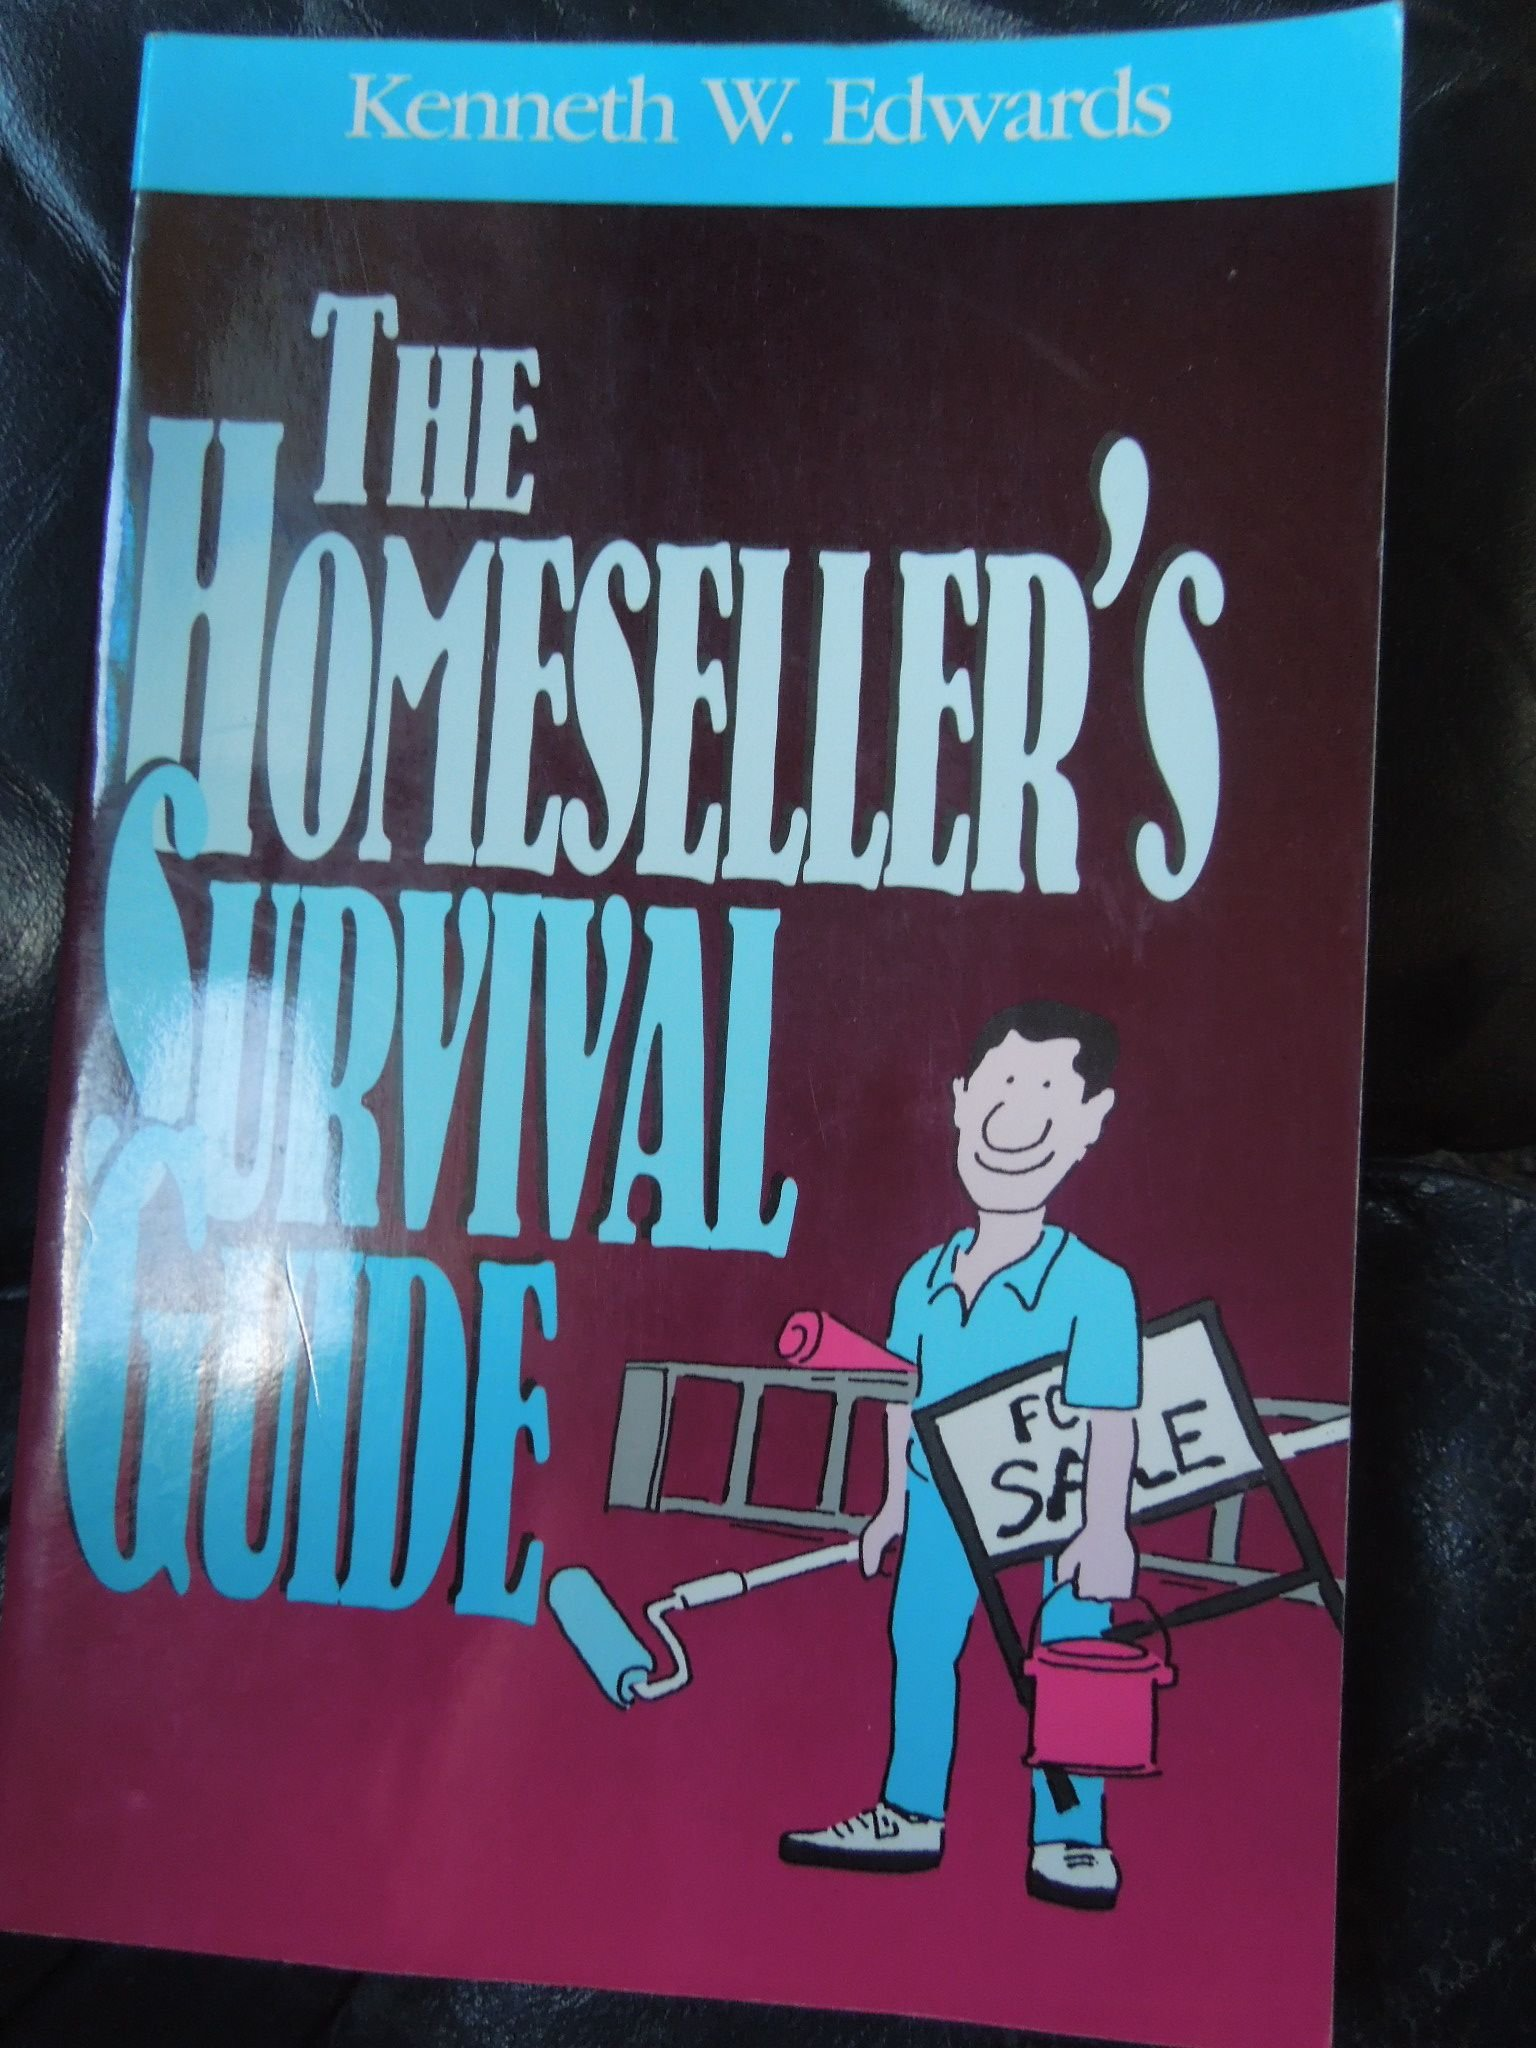 The Homeseller's Survival Guide